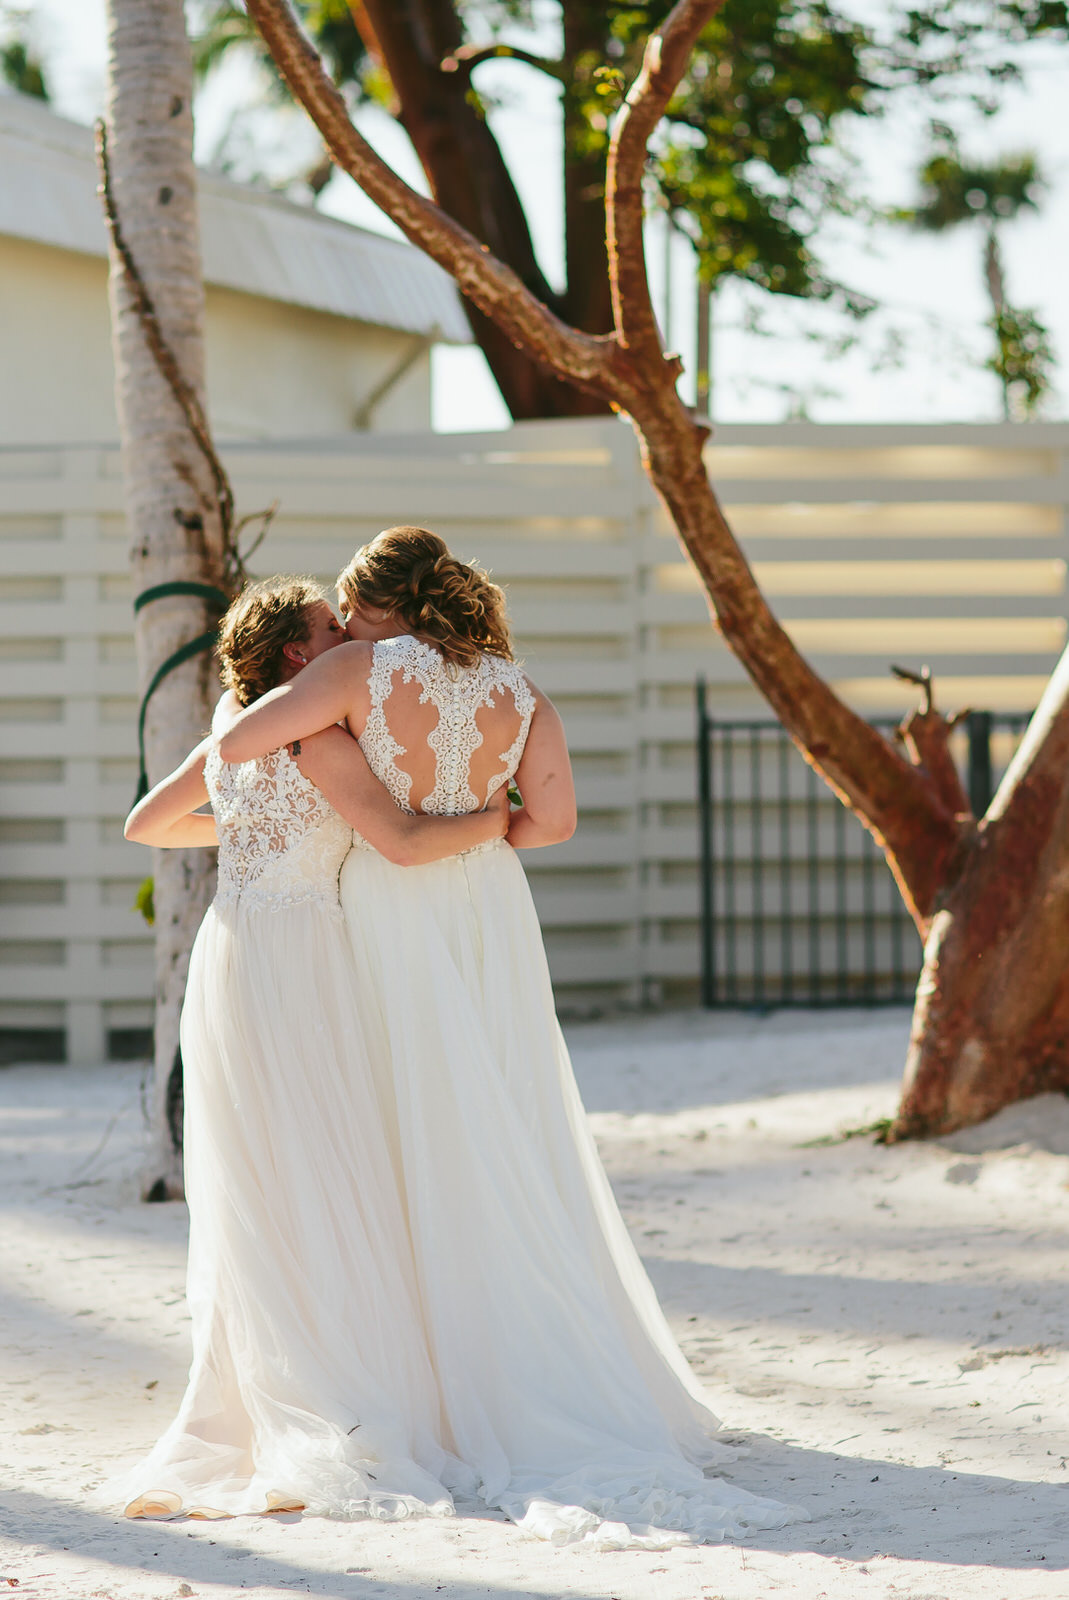 two_brides_better_than_one_best_gay_friendly_wedding_photographer_tiny_house_photo.jpg